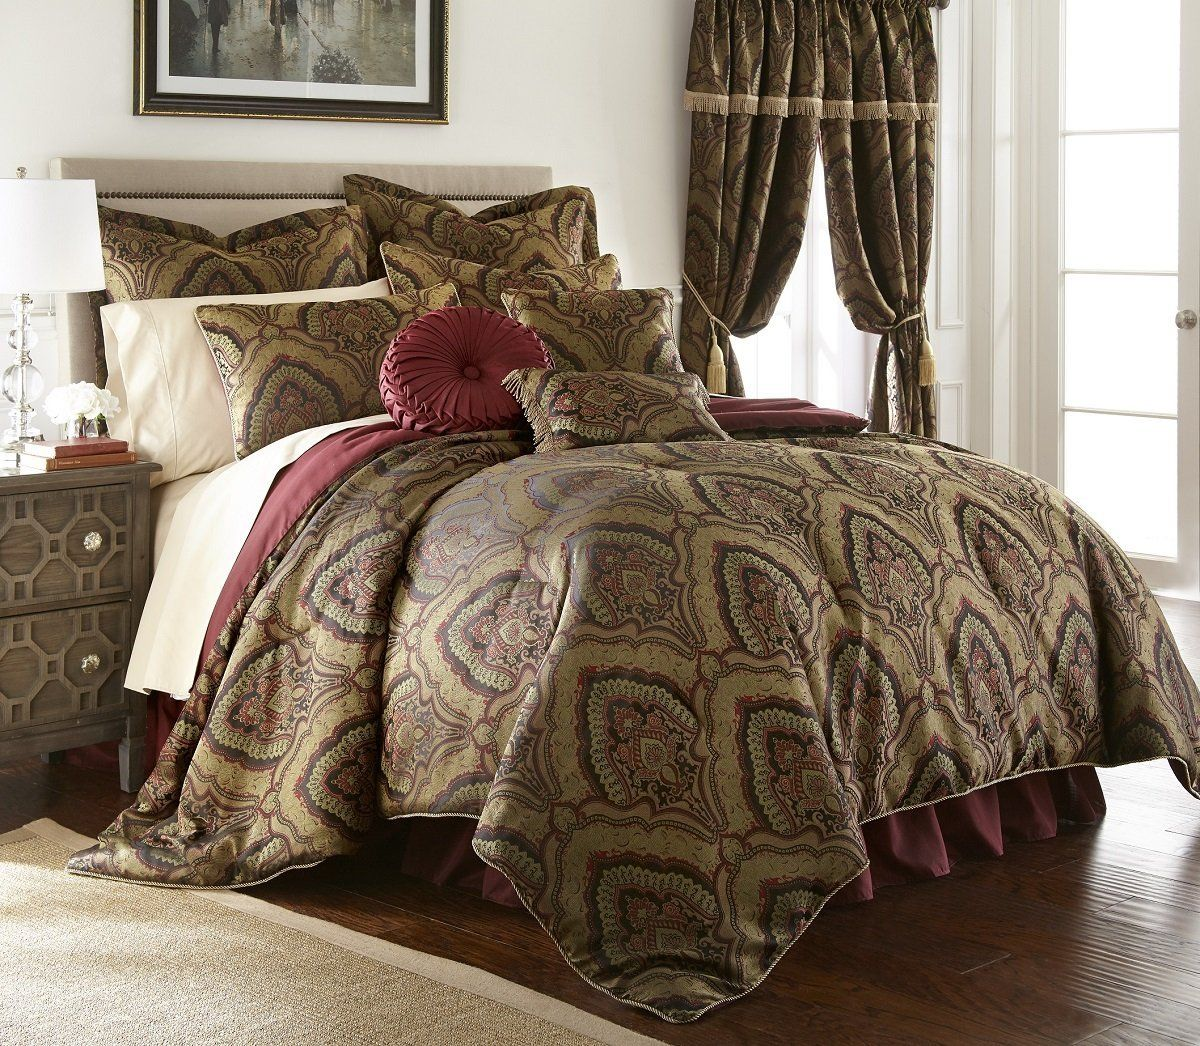 thread along modern king set comforter dk trendy info posh wood extra discount plus a count at oversized large dimensions bed s sets bag queen with cotton gray size canada quilts waverly tommy progizn